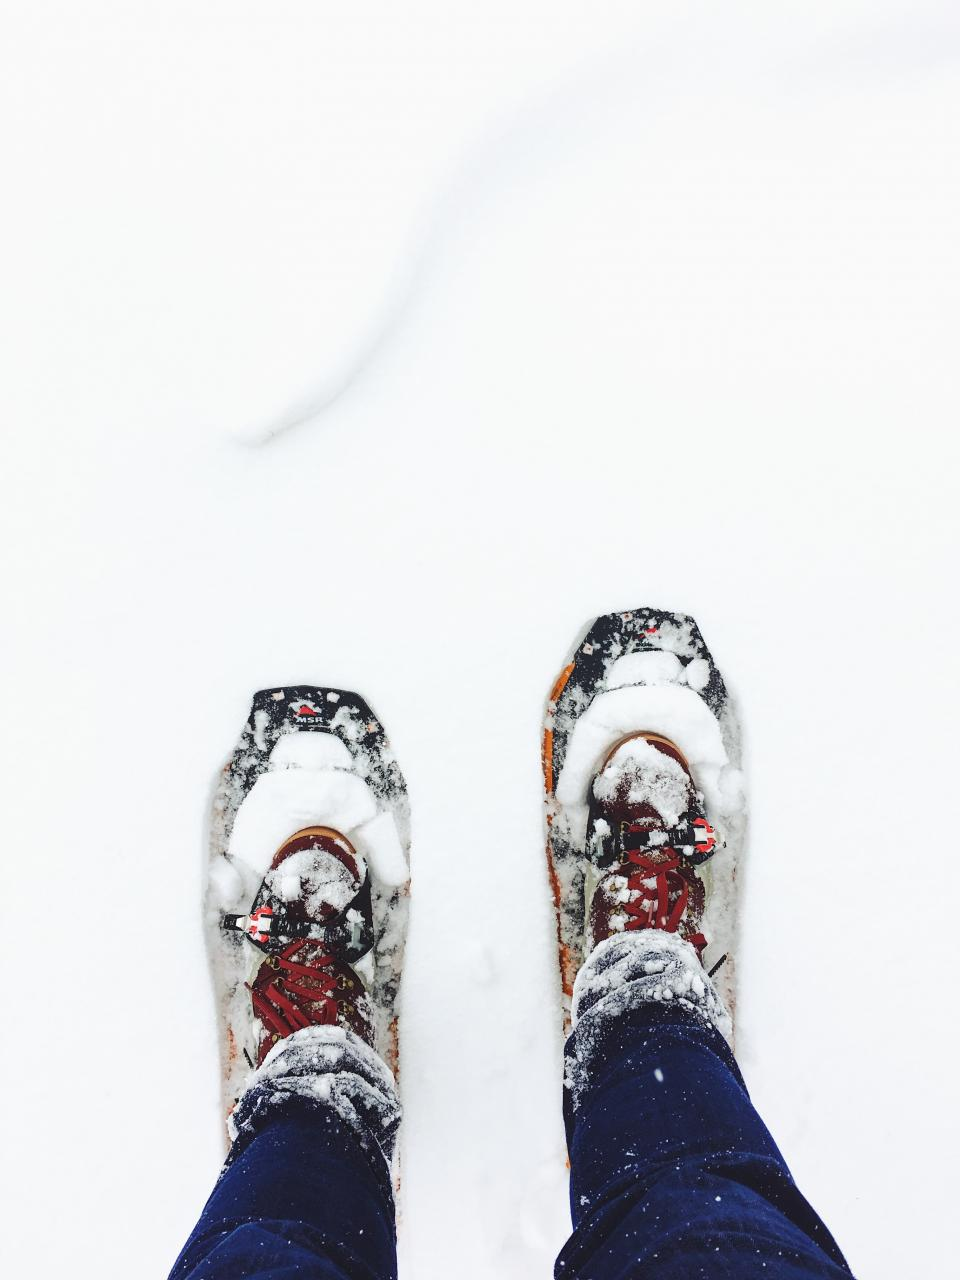 snow, winter, white, cold, weather, ice, people, feet, shoes